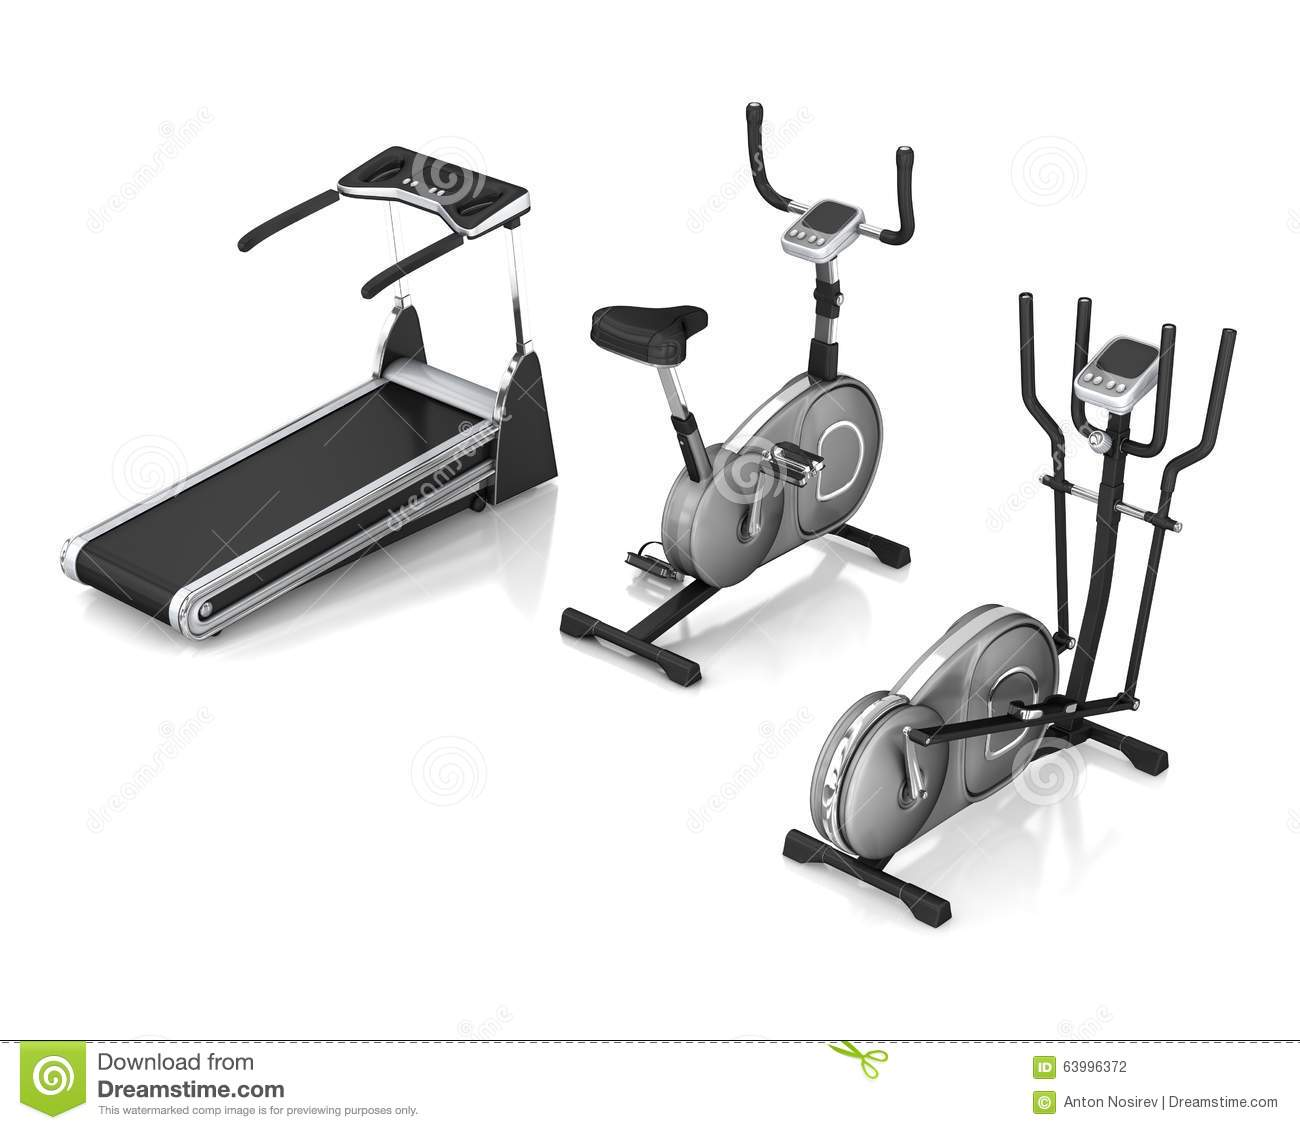 What is better exercise bike or treadmill 14